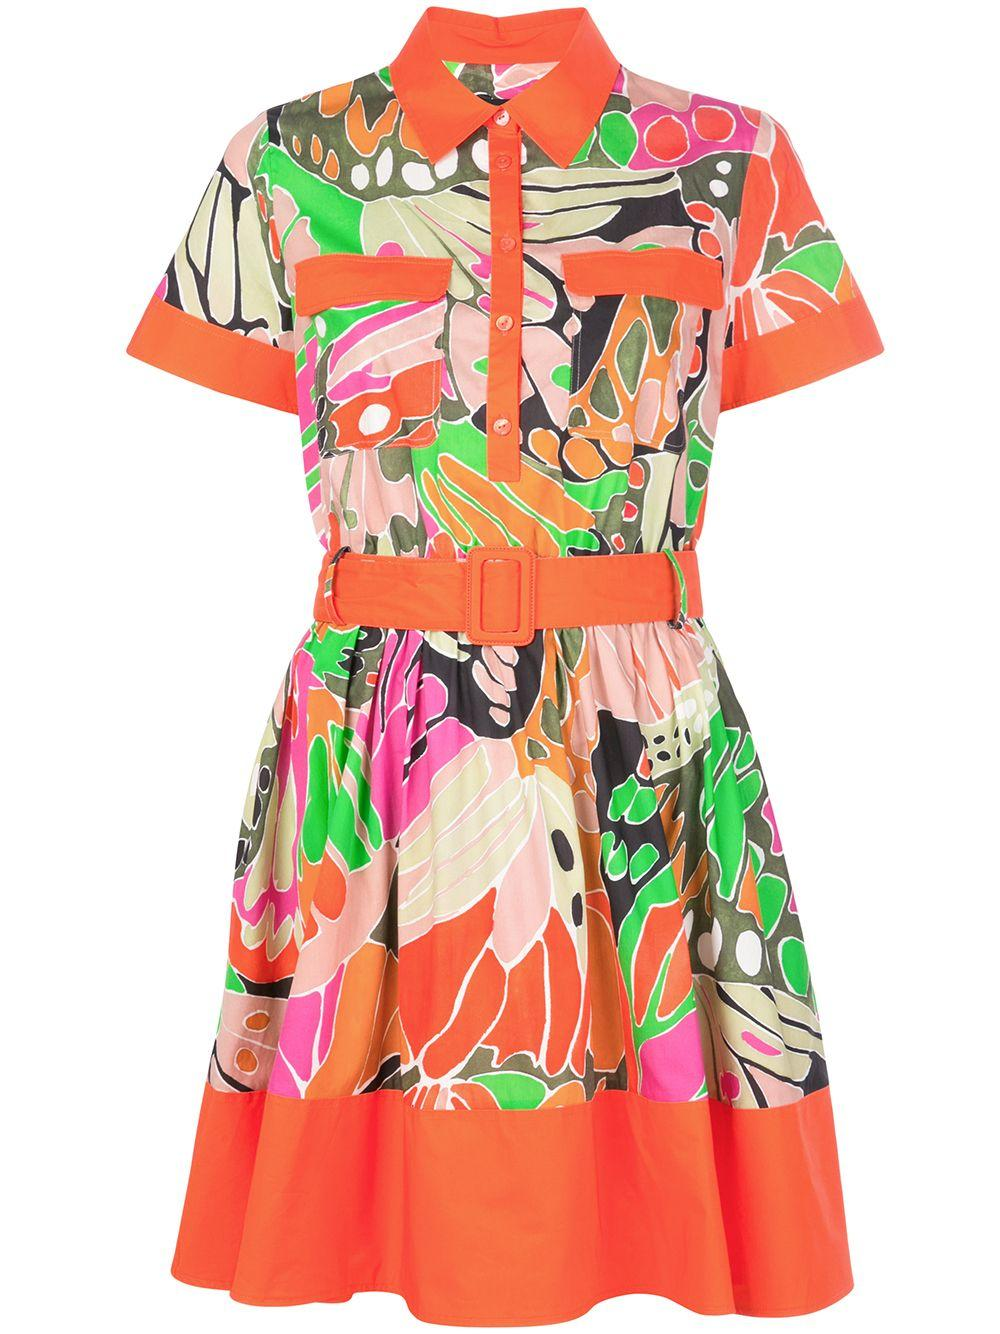 Short Sleeve Printed Dress With Collar Item # 210/R58